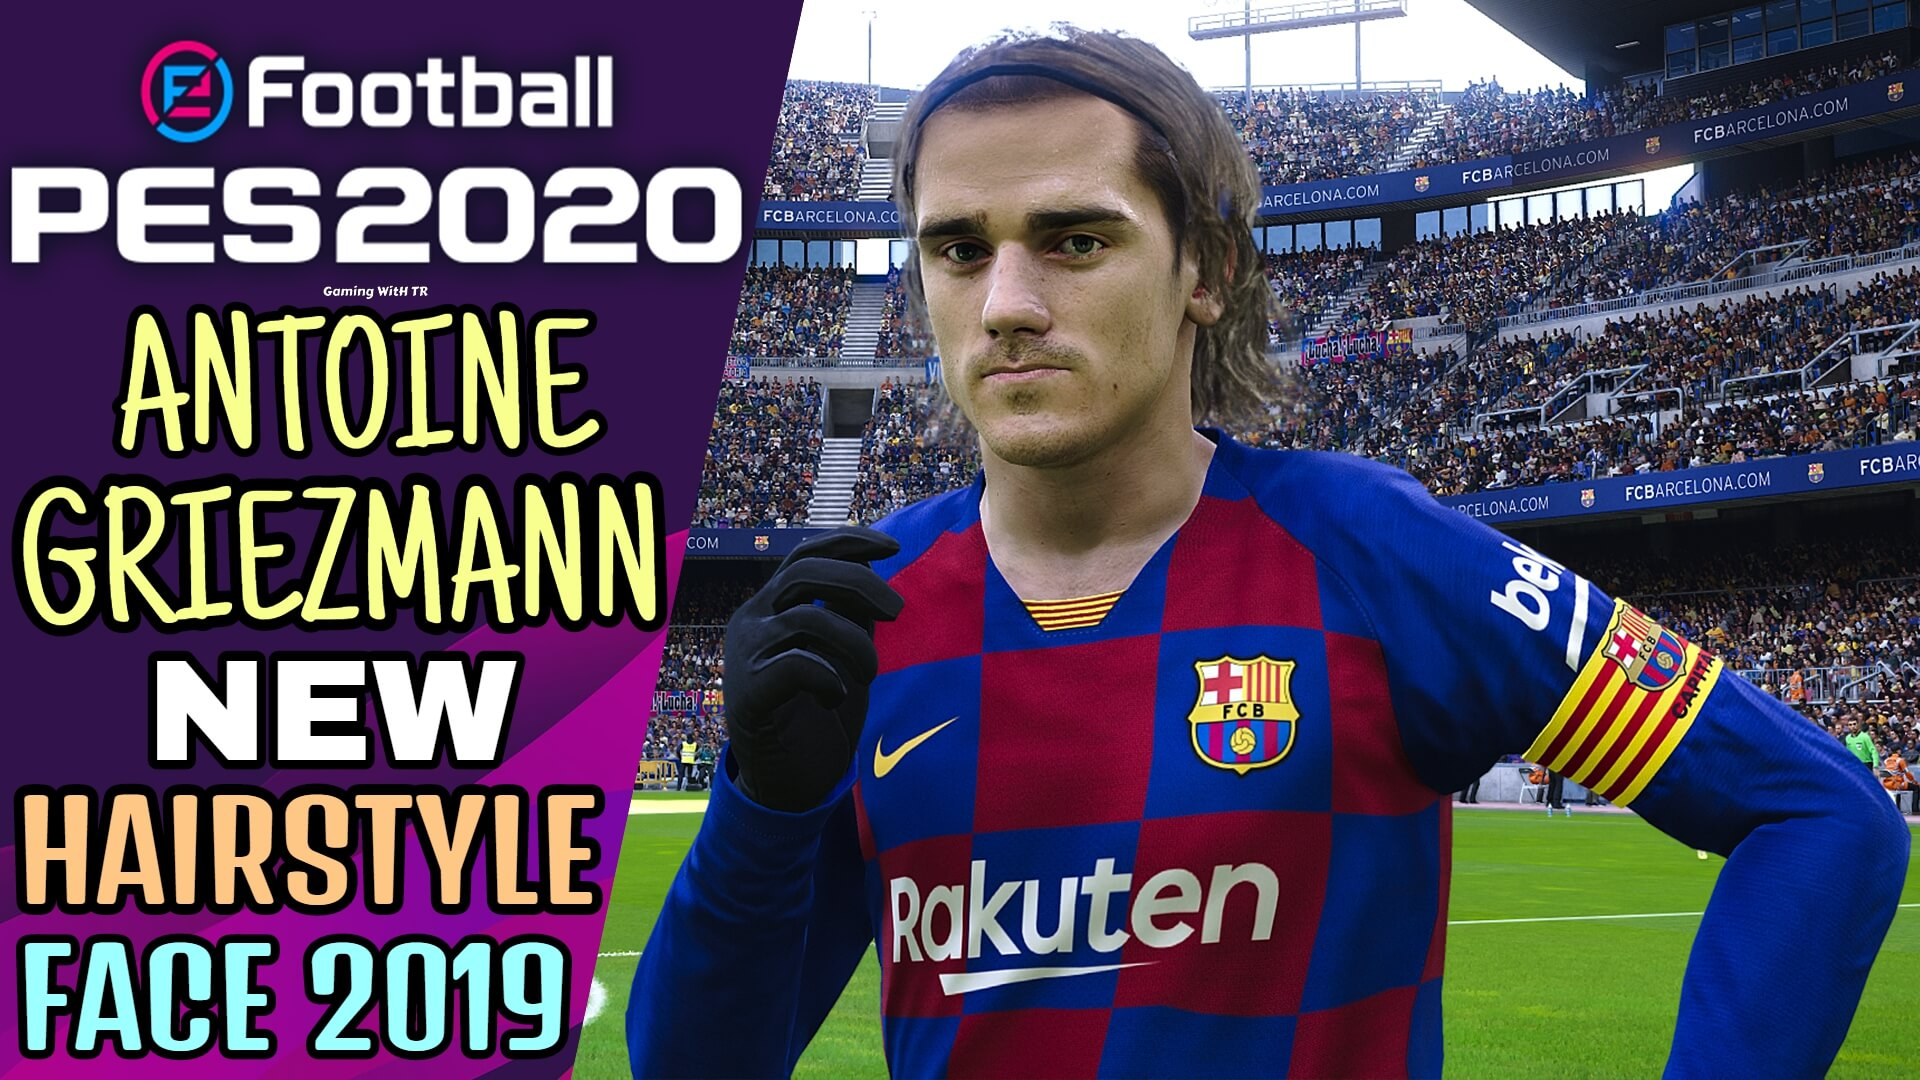 Pes 2020 Antoine Griezmann New Hairstyle New Face 2019 Pes 2020 Gaming With Tr